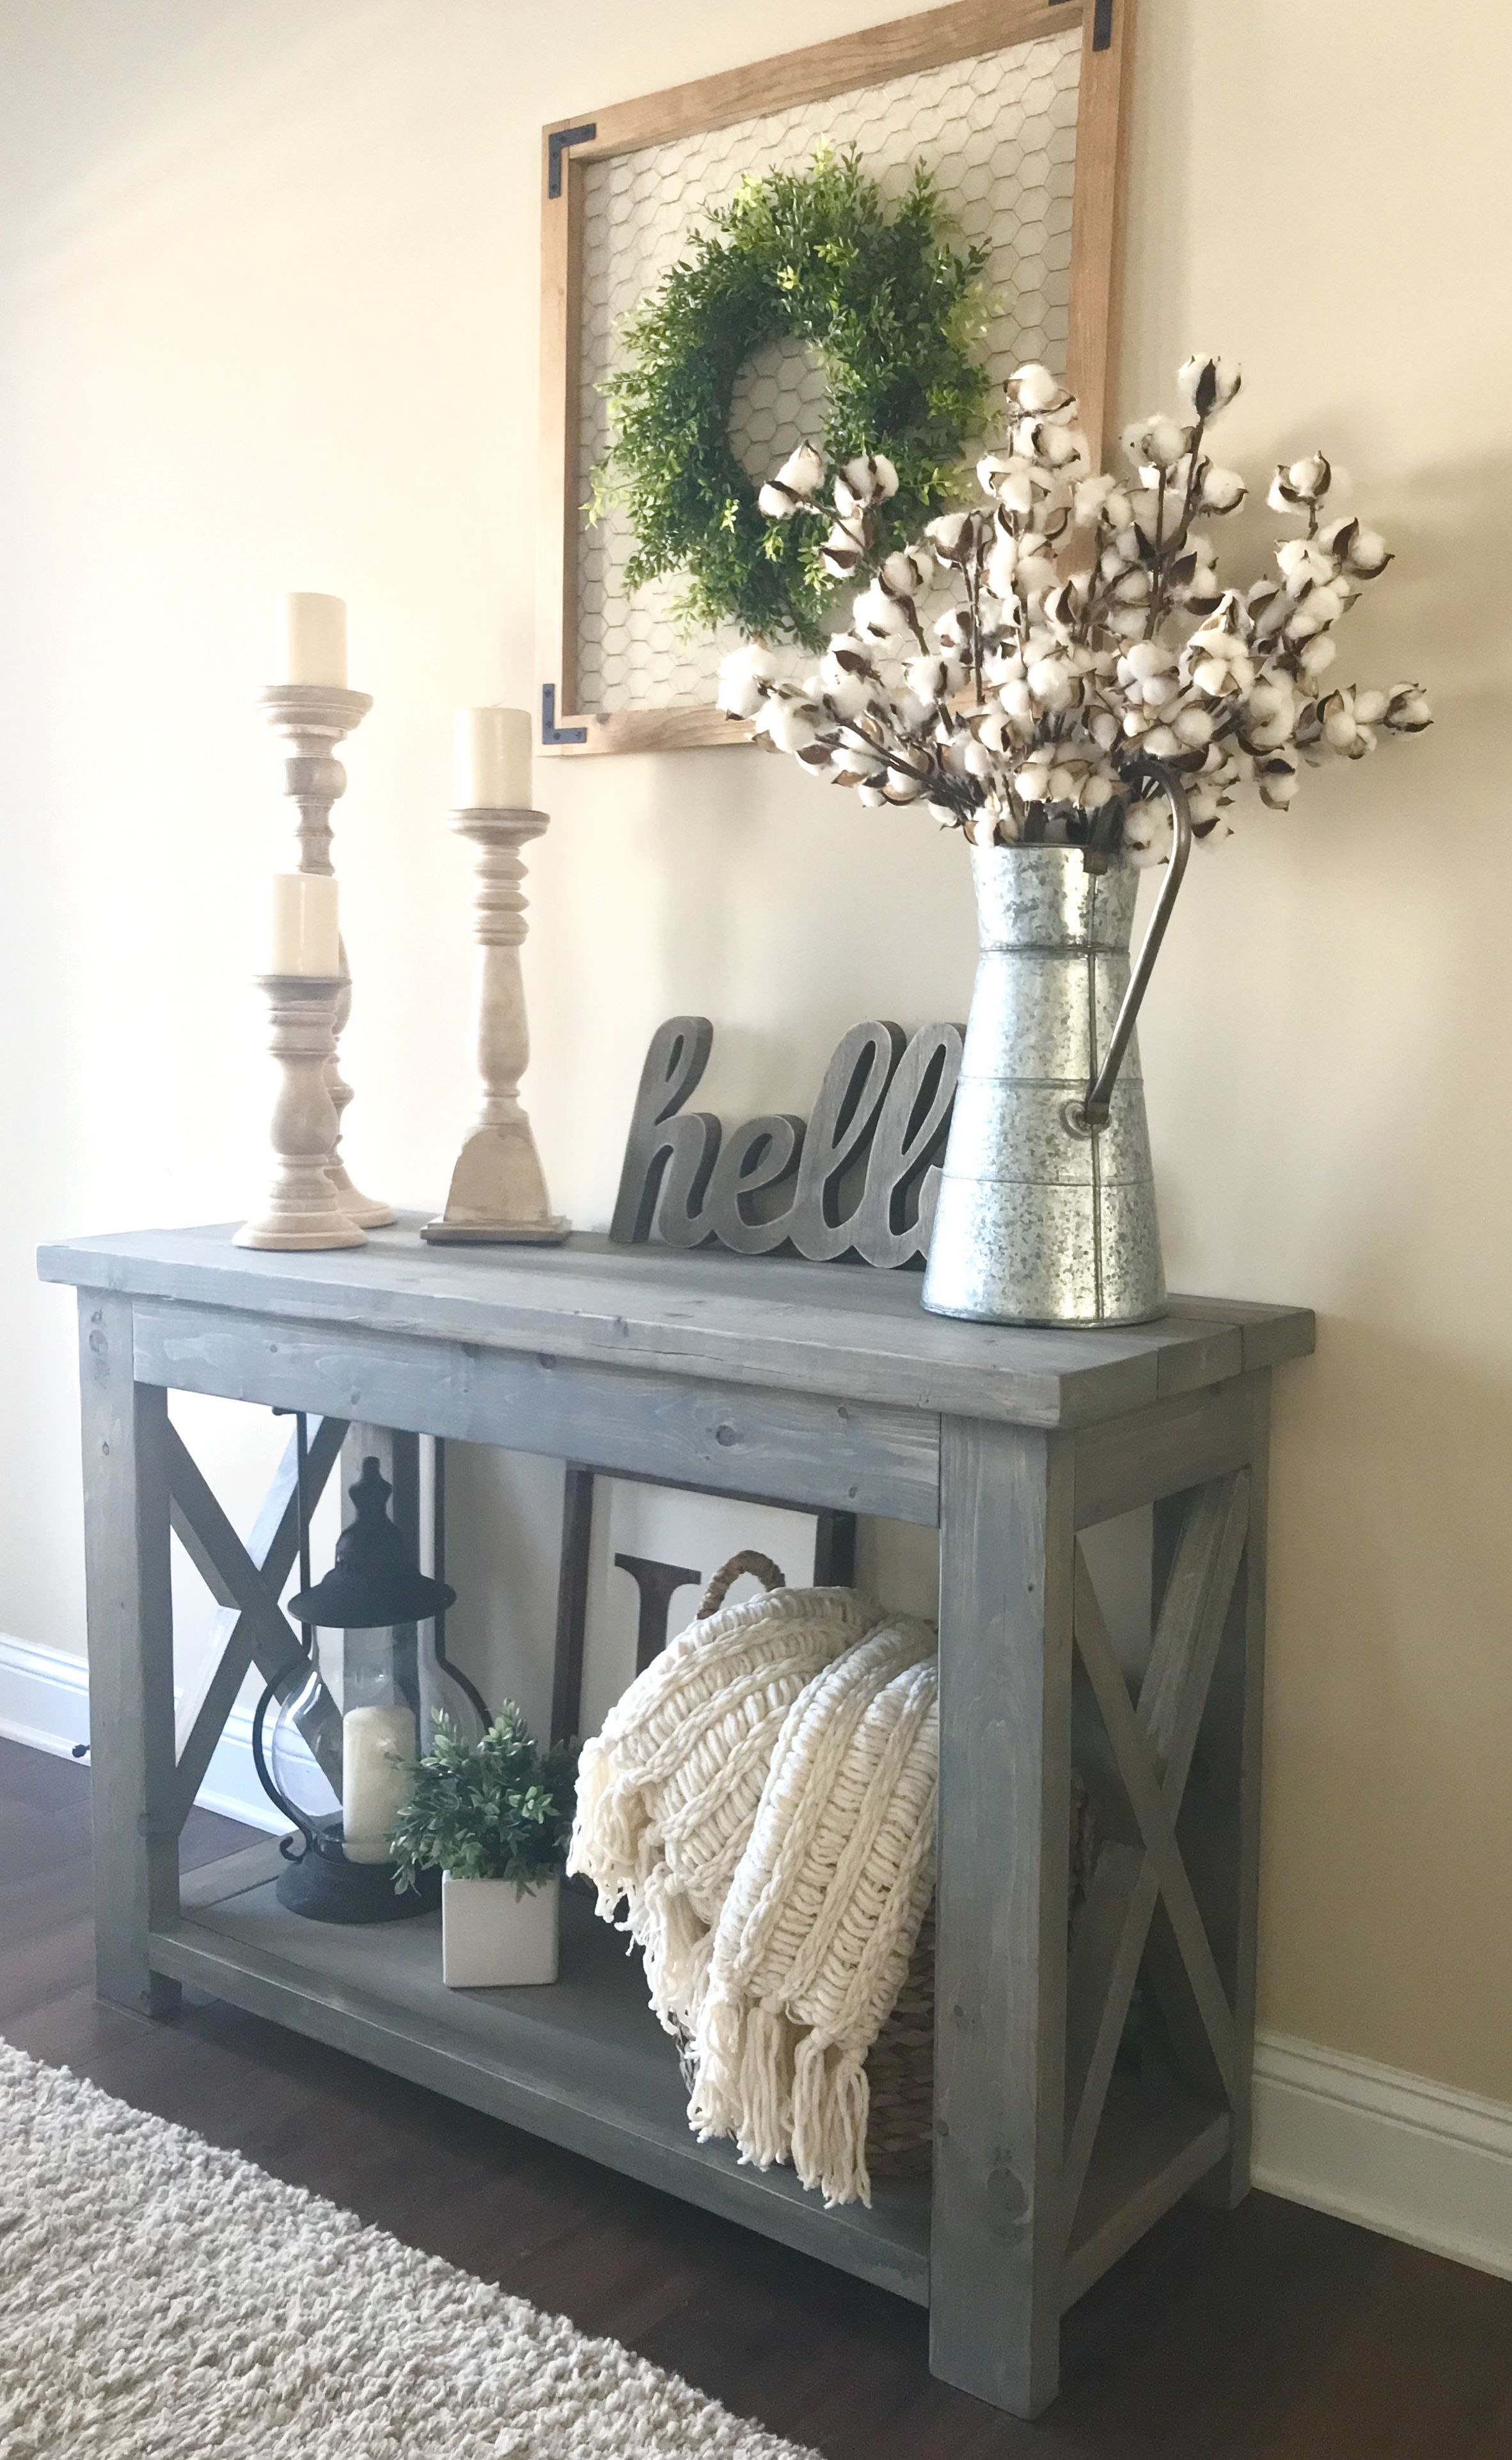 Modified Ana White S Rustic X Console Table 48 Wide And No Middle Shelf Used Minwax Classic Gray Stain Rusticl Home Decor Wohnkultur Ideen Inneneinrichtung